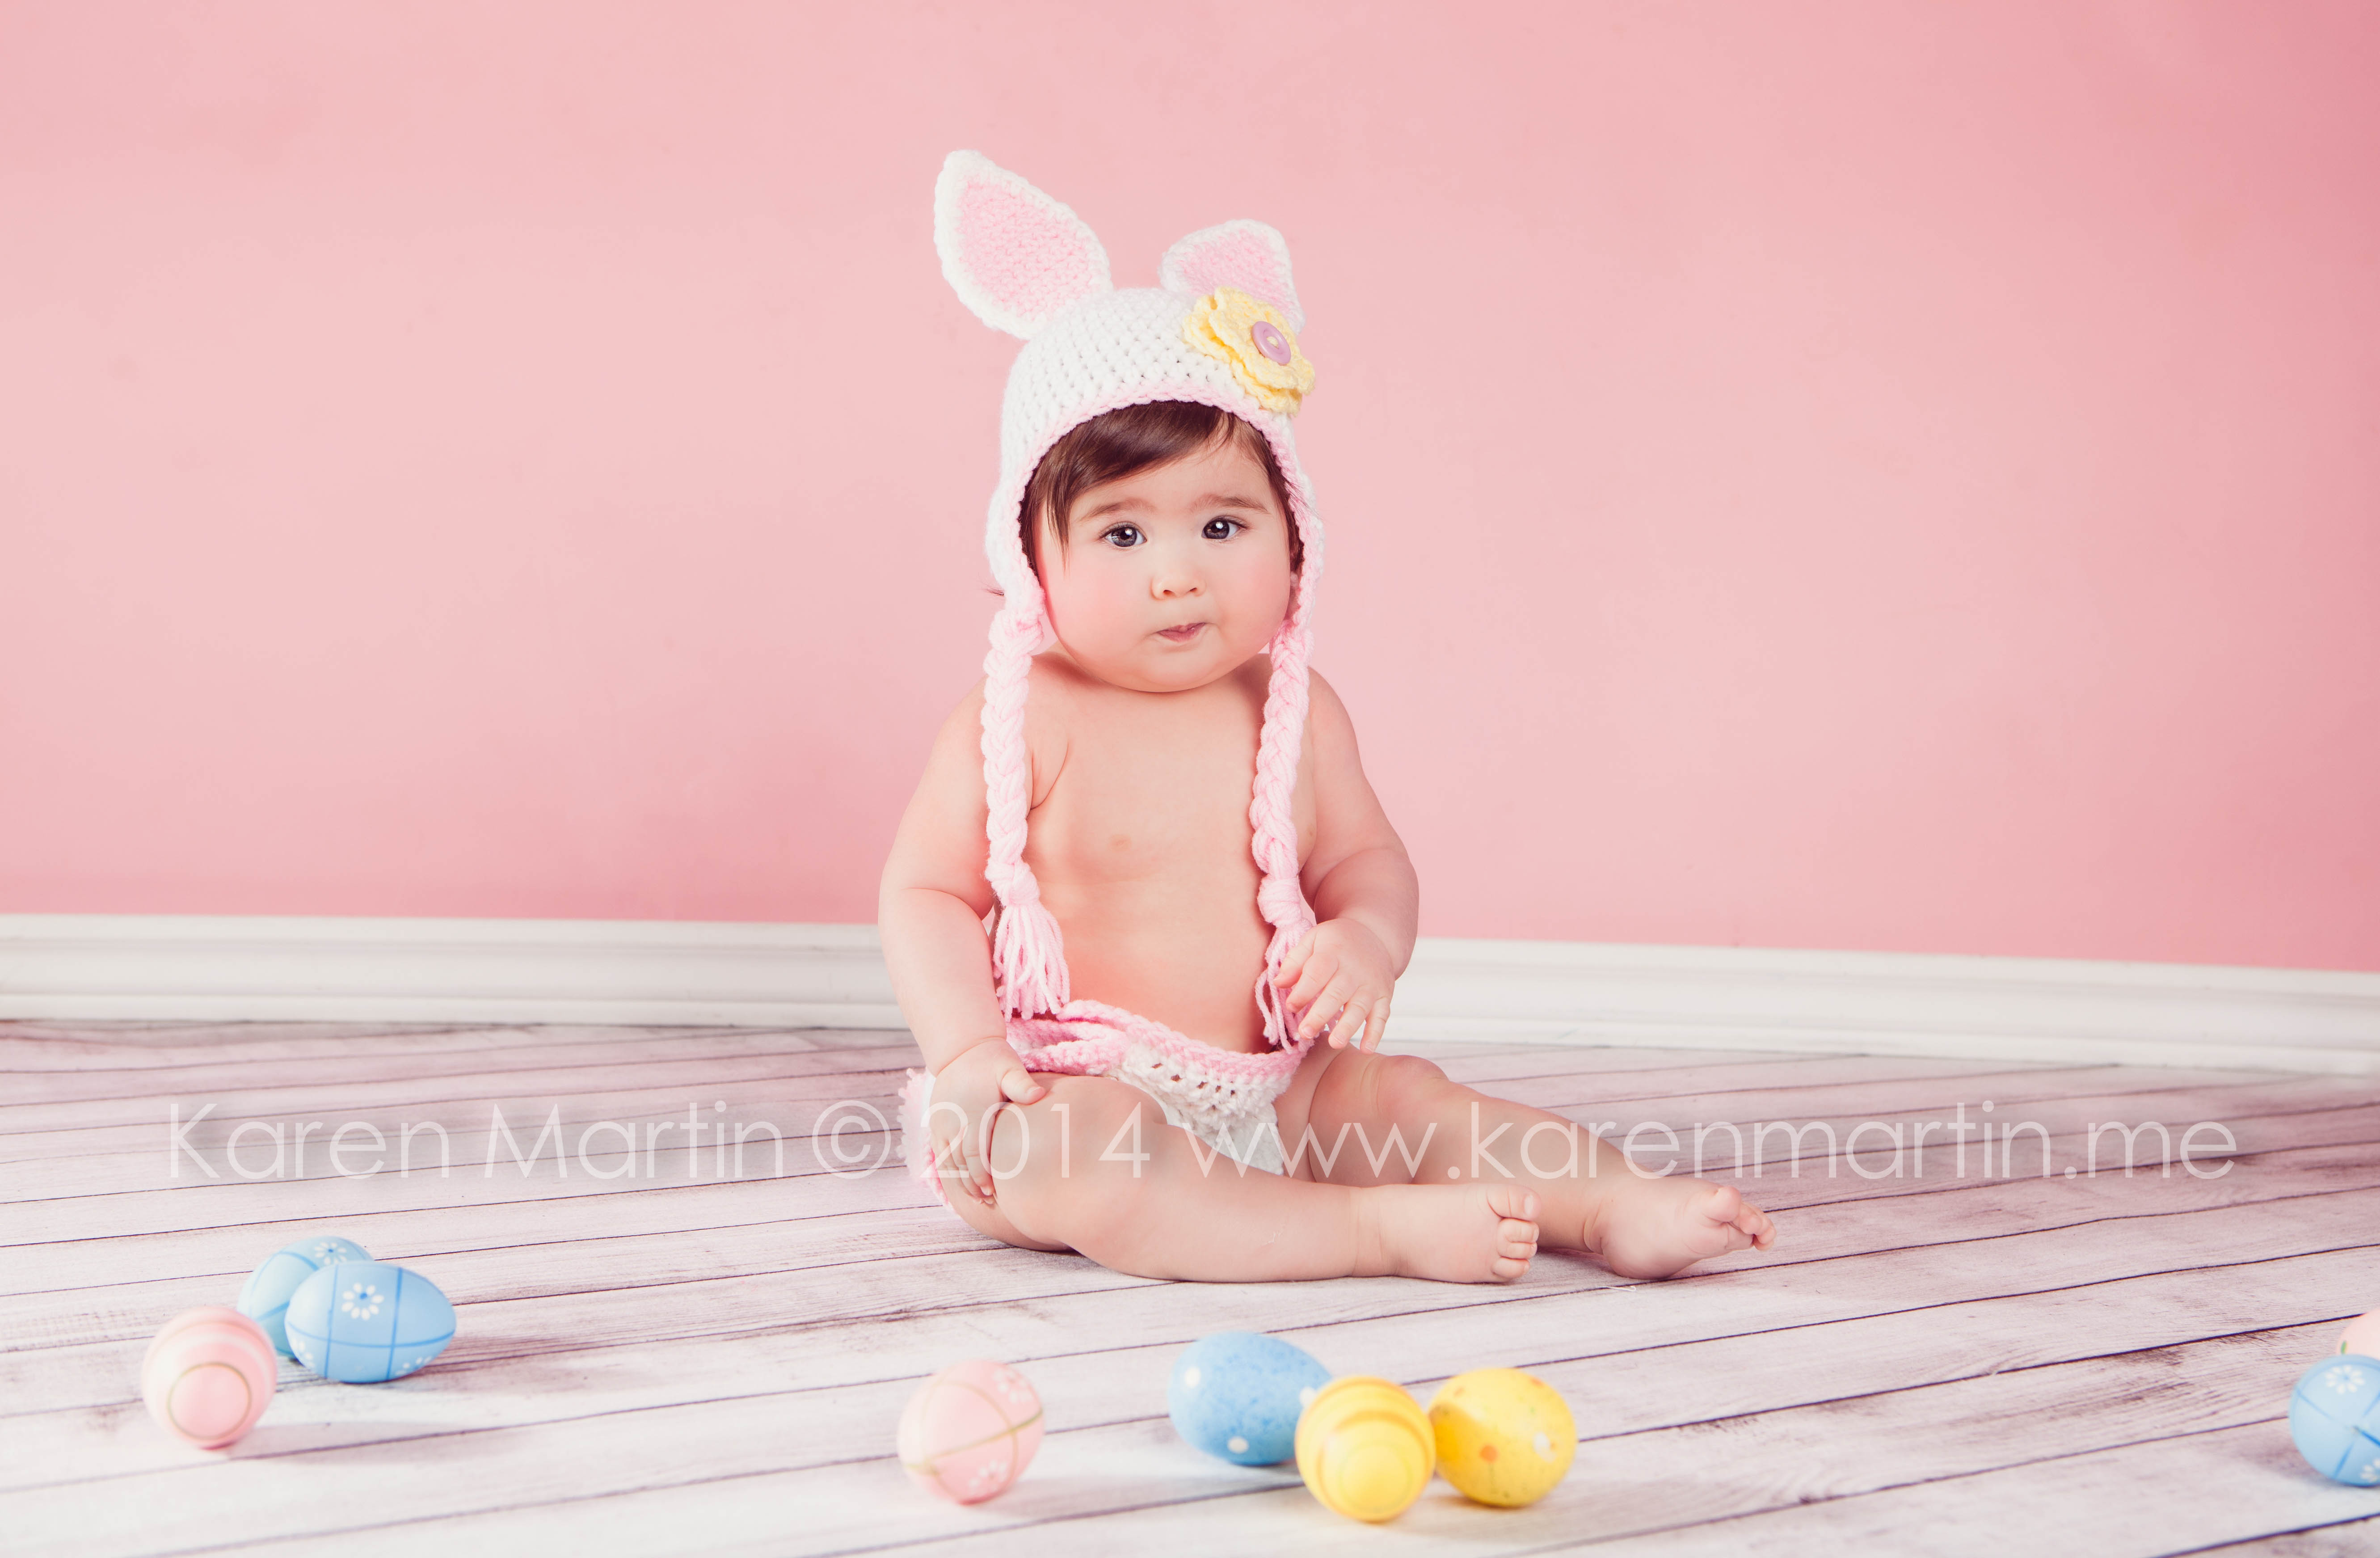 6 month old baby portrait | KarenMartin Photography